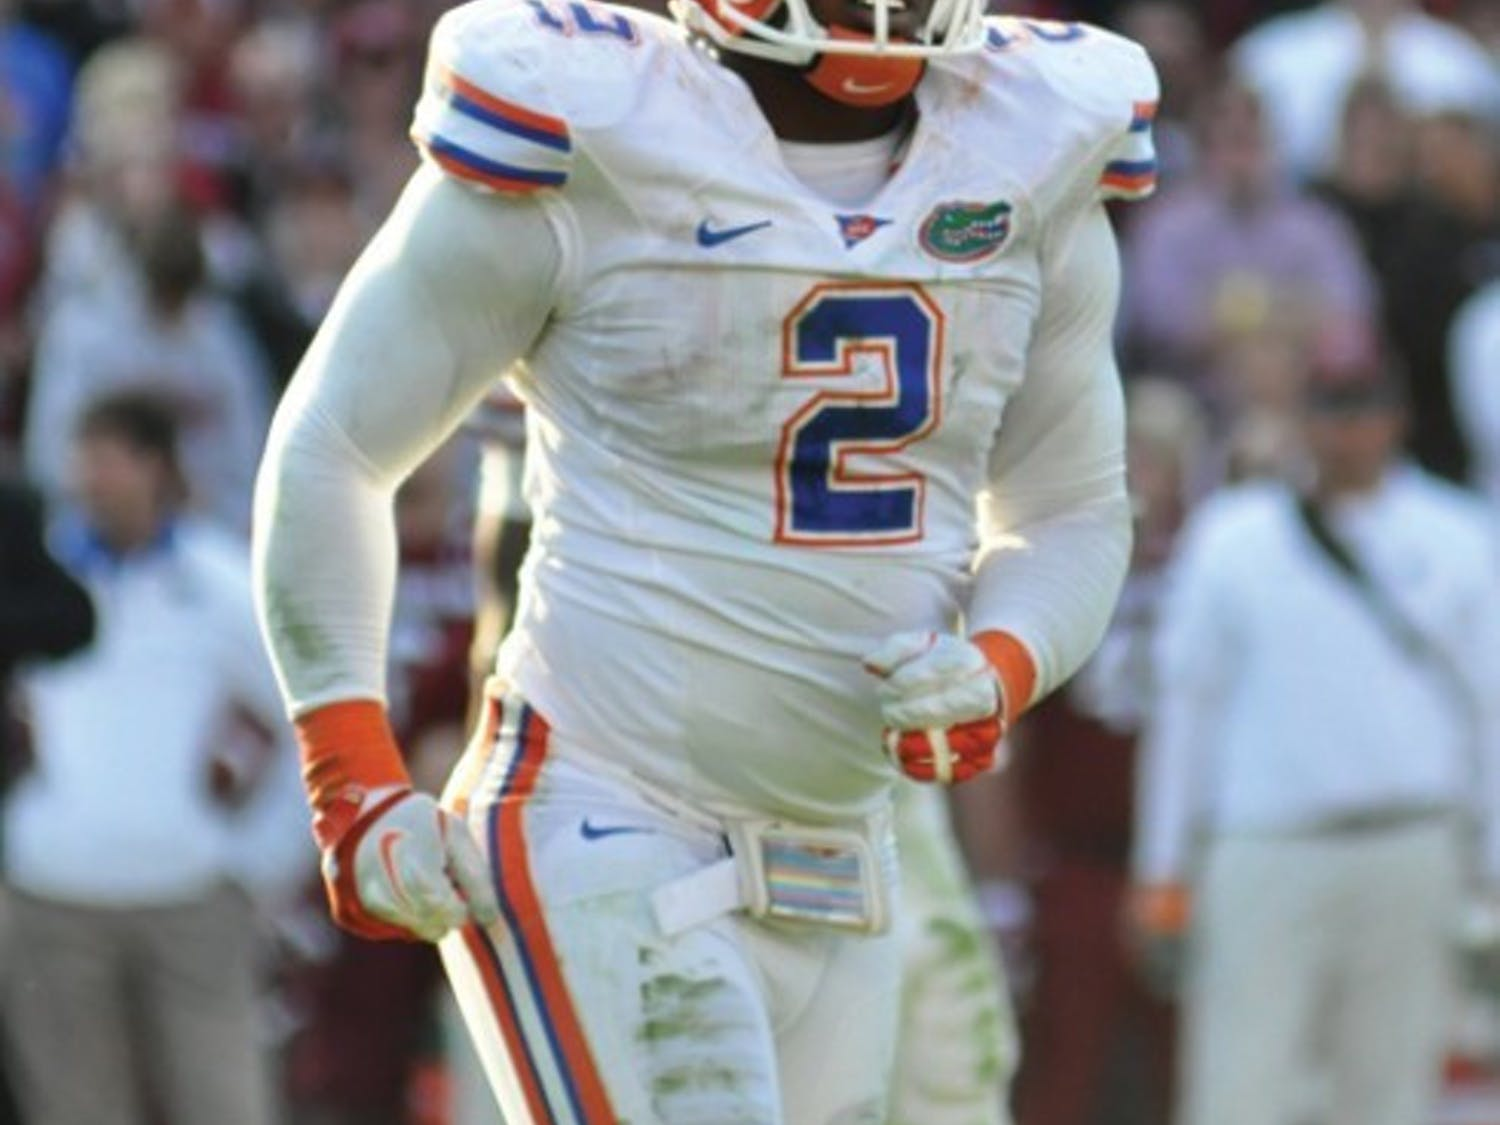 Defensive end Dominique Easley takes on Tyler Bray and the Tennessee offense on Saturday at Neyland Stadium in Knoxville, Tenn. Florida has generated four sacks this season while the Volunteers have allowed just one.